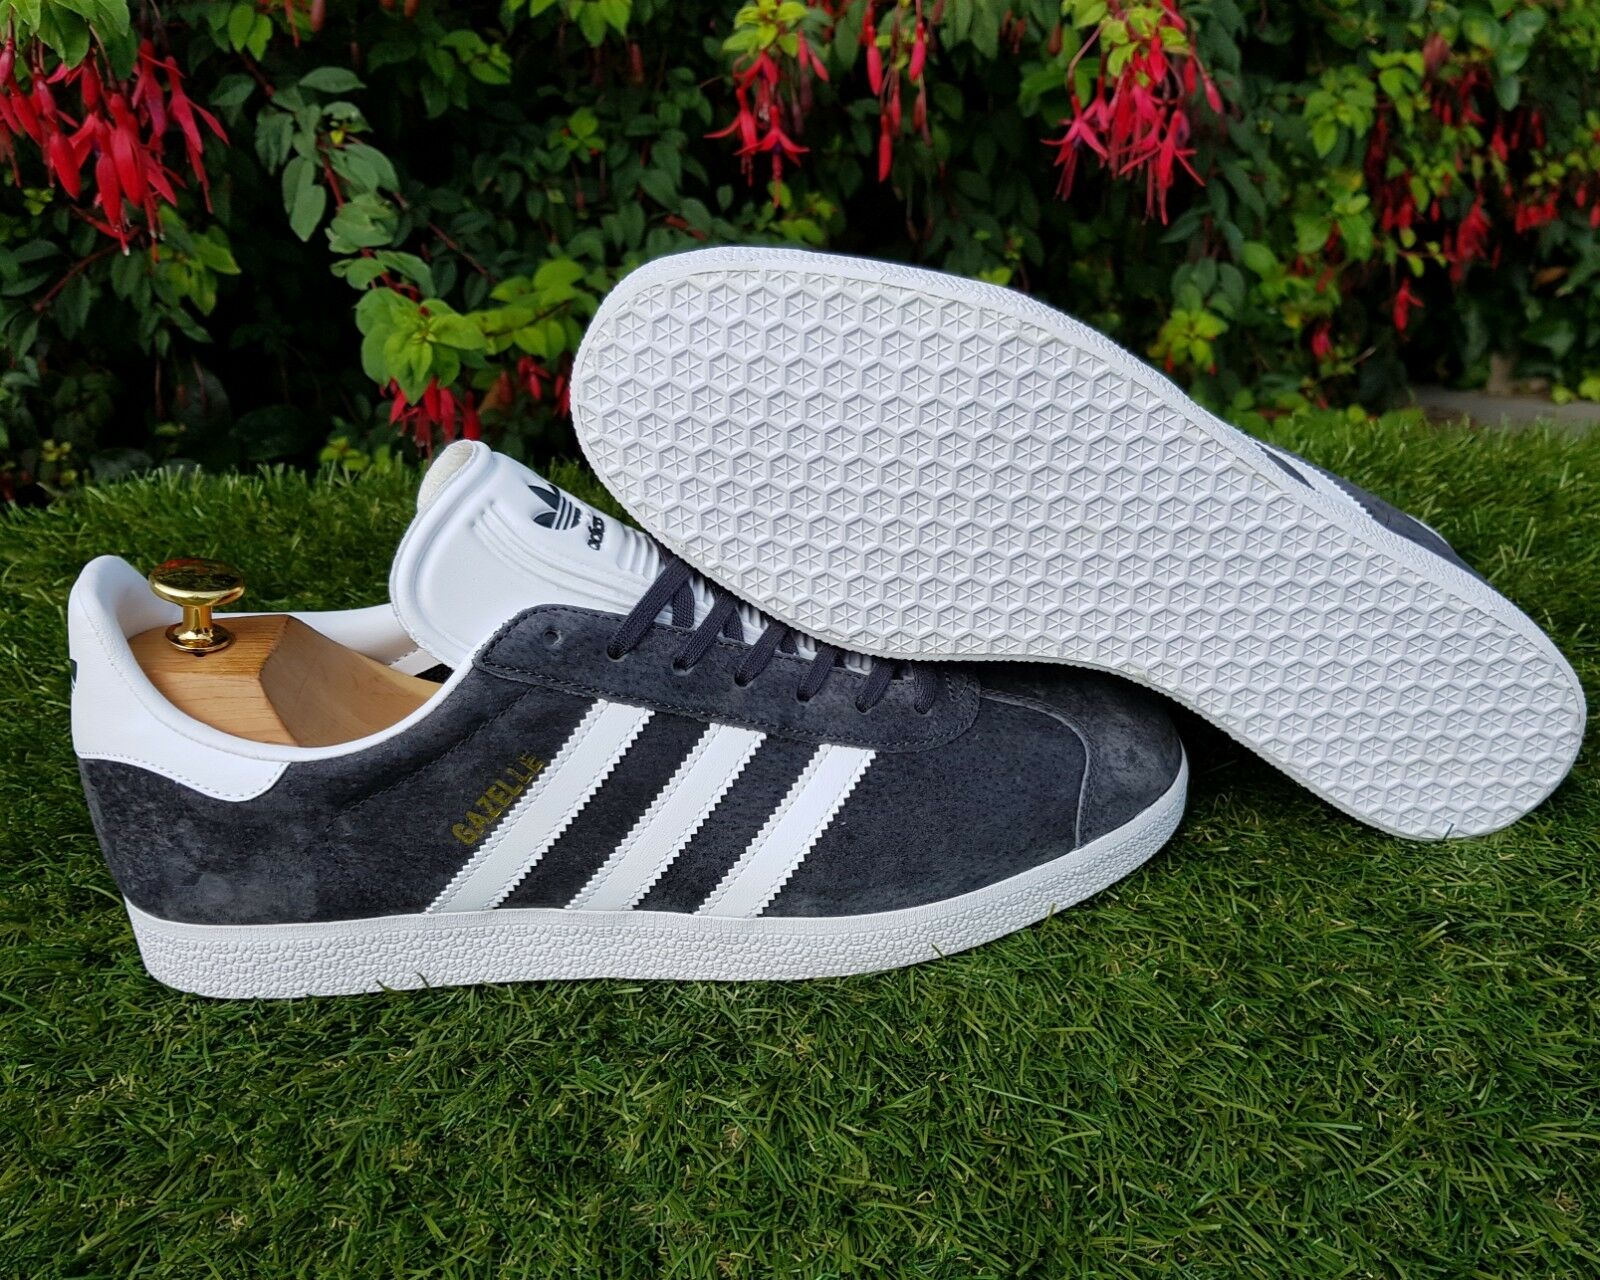 BNWB & Authentic Adidas Originals ® ® ® Gazelle Dark gris Suede Trainers UK Talla 7 7fe7c4